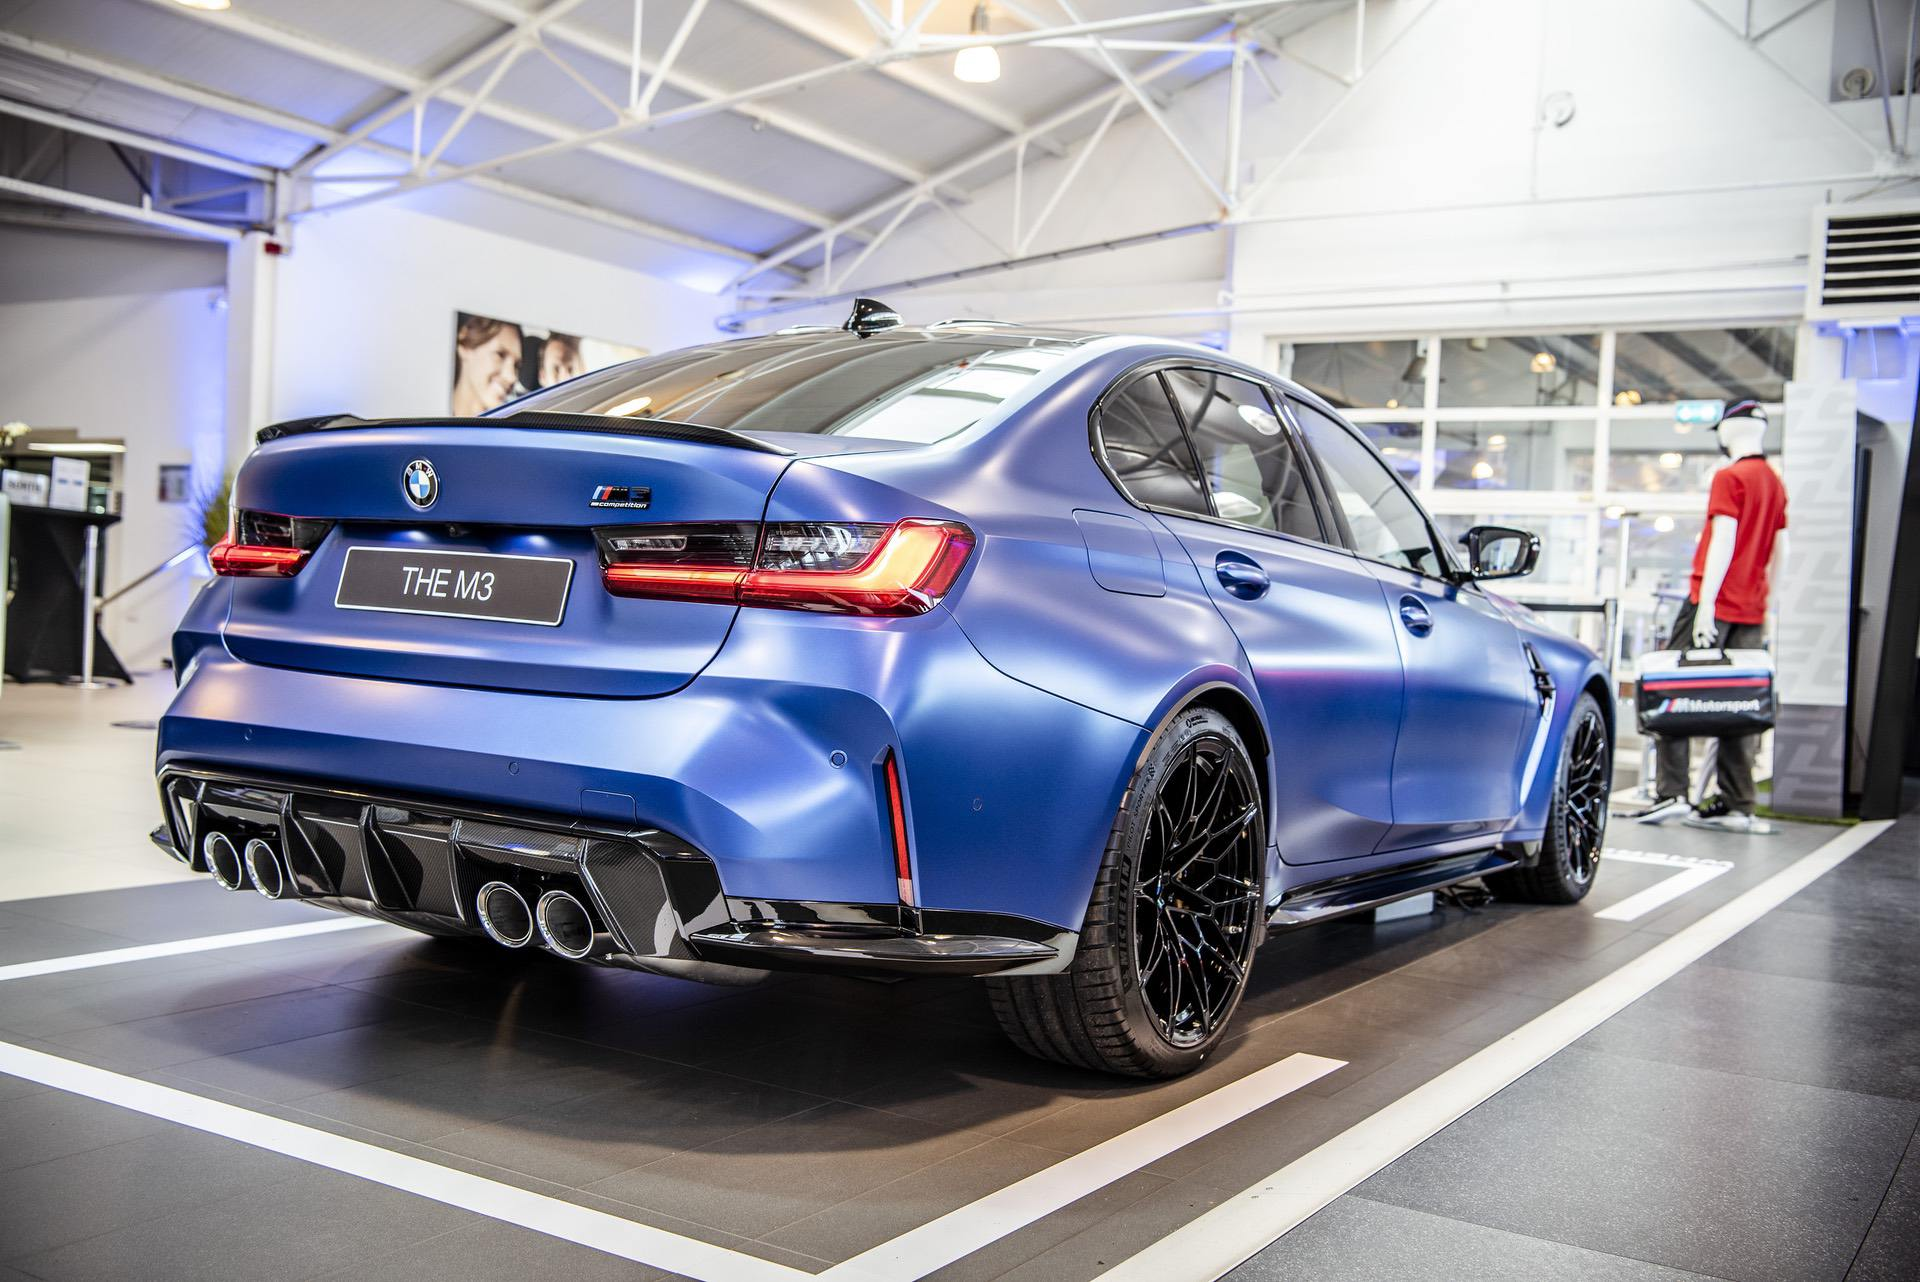 2021 Bmw M3 Displayed In The Frozen Portimao Blue Color From Bmw Individual